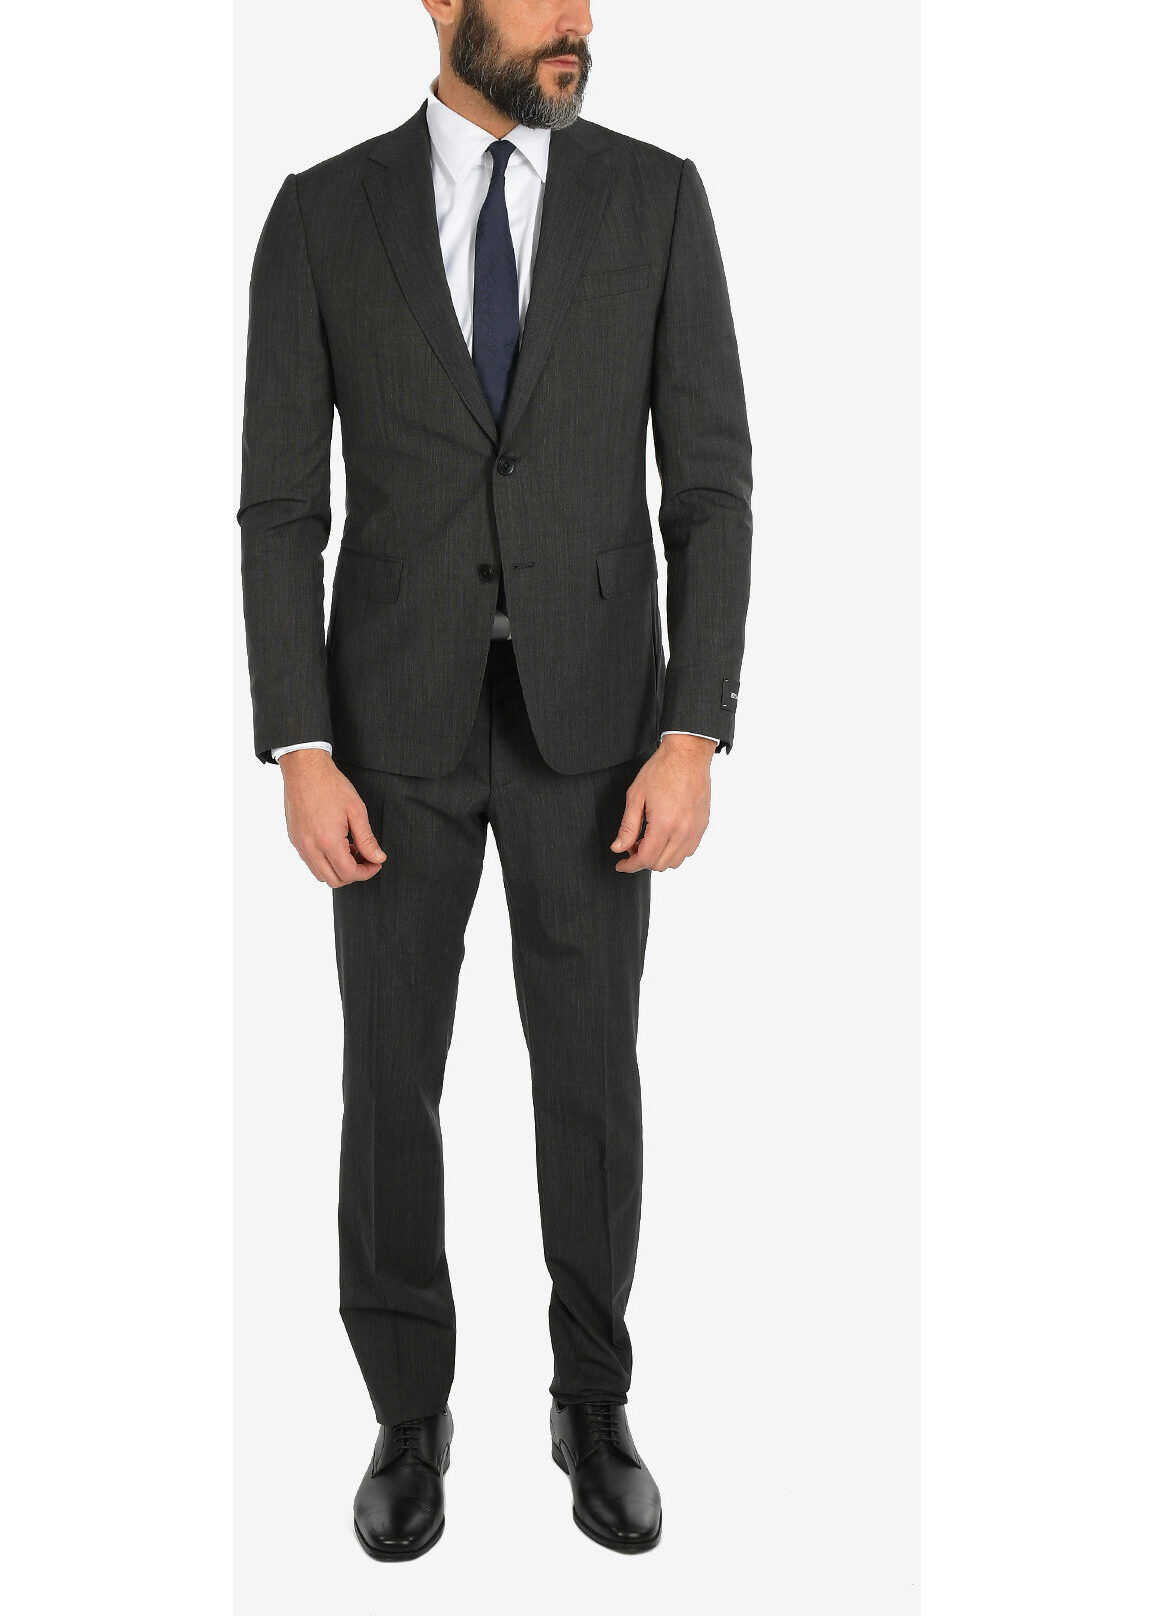 ZZEGNA Stretchy Wool 2 Button Suit